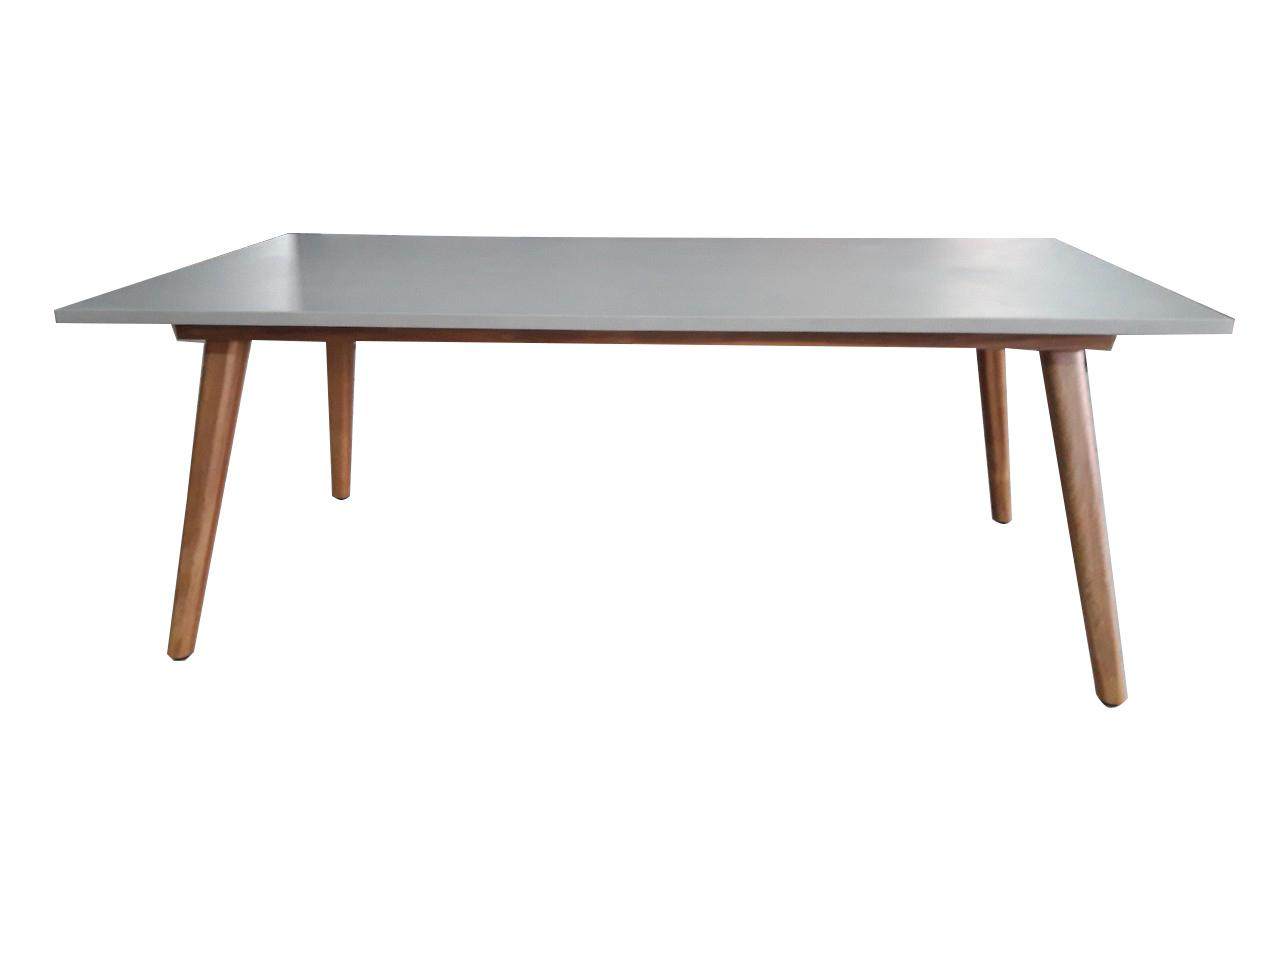 Korting Andorra dining table with polystone top 200x100x75